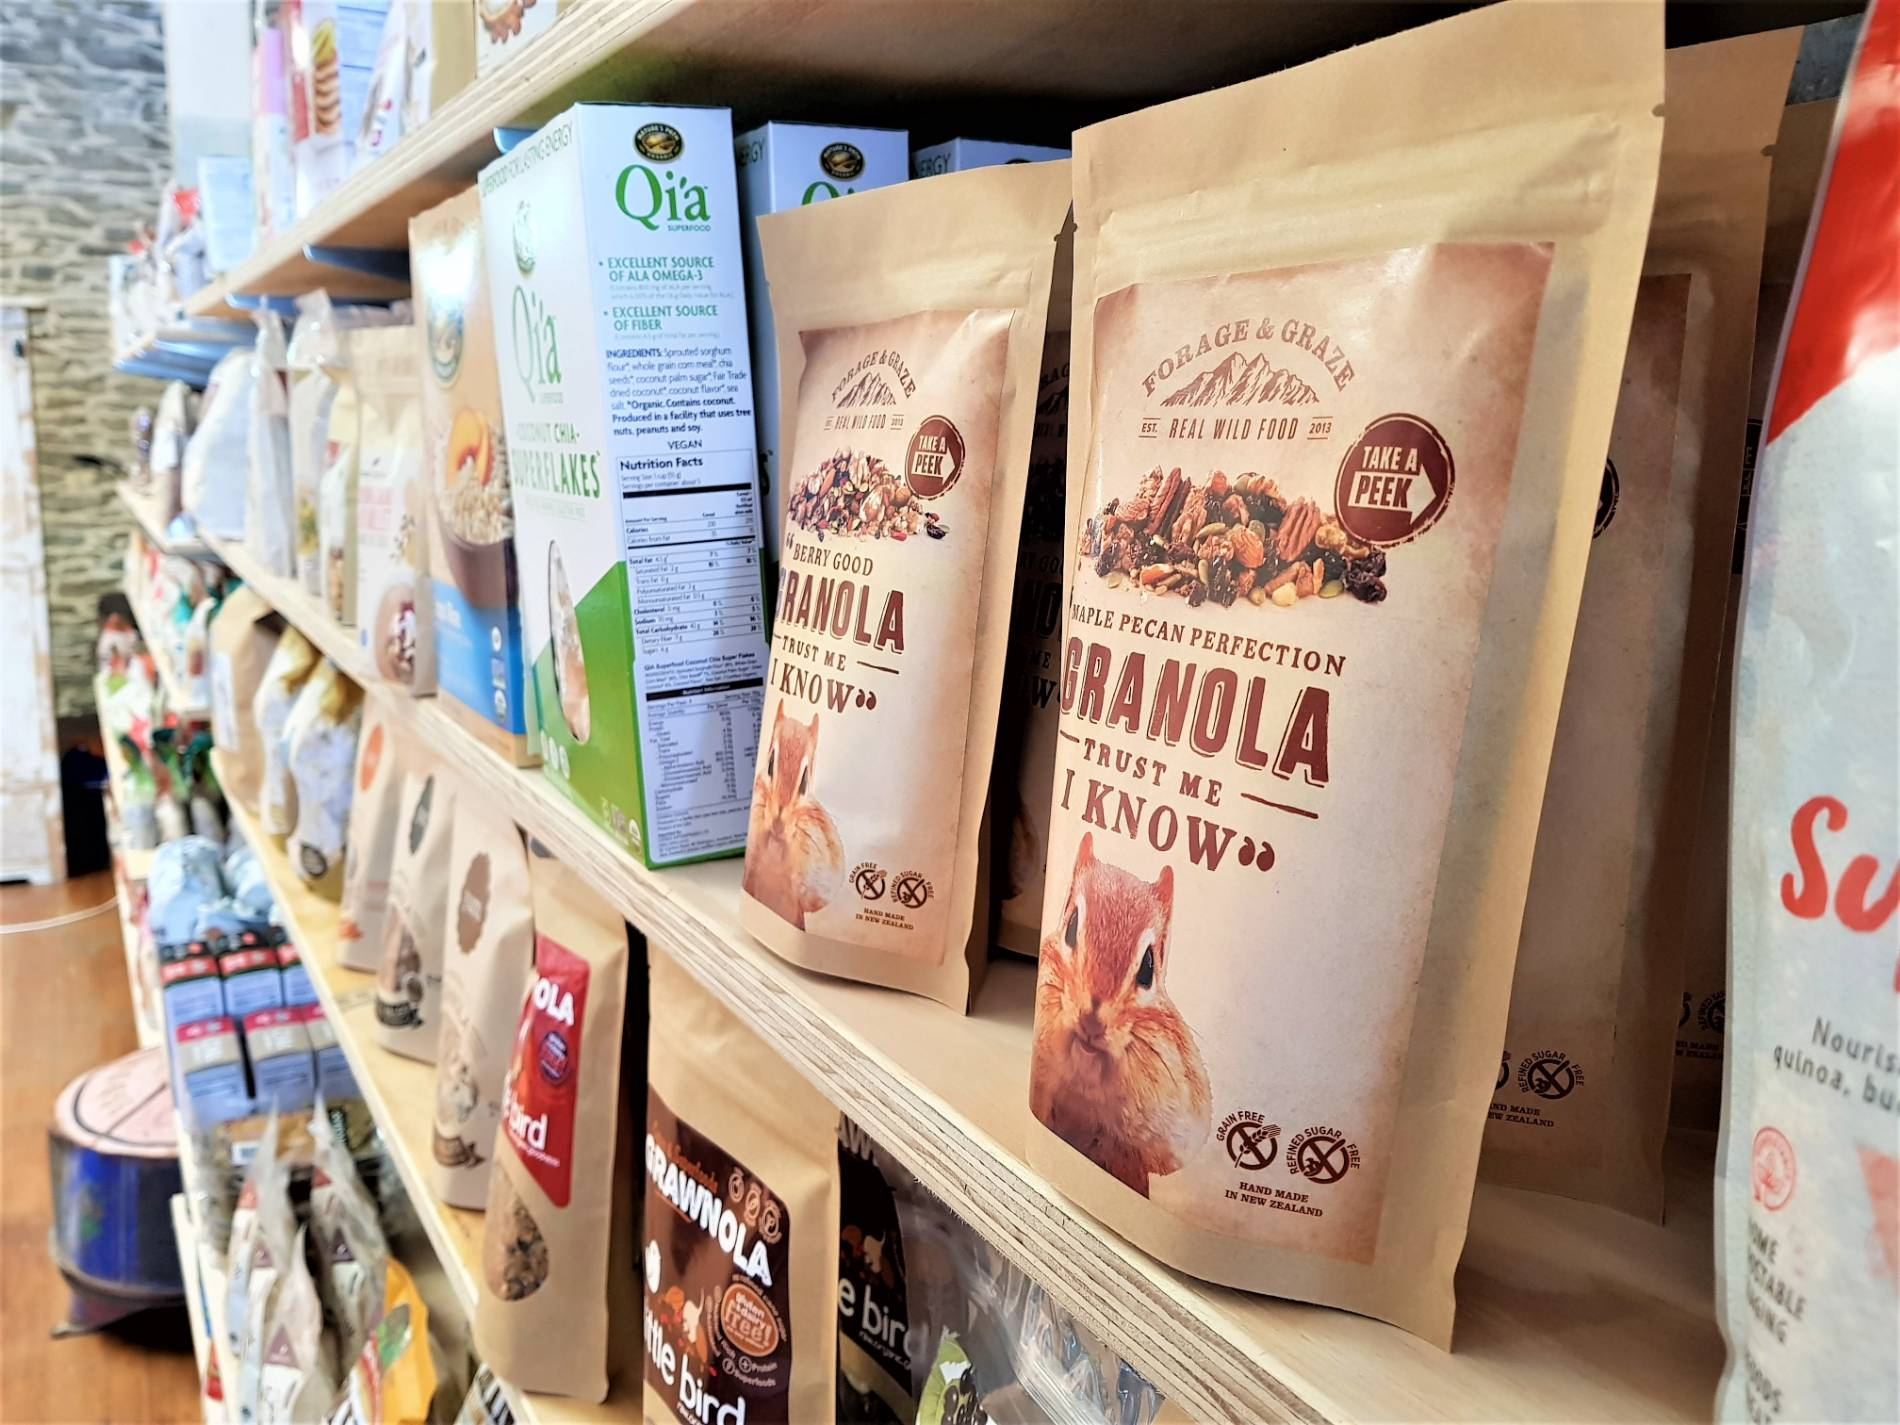 Feinermans Shop shelf in Roxburgh - organics